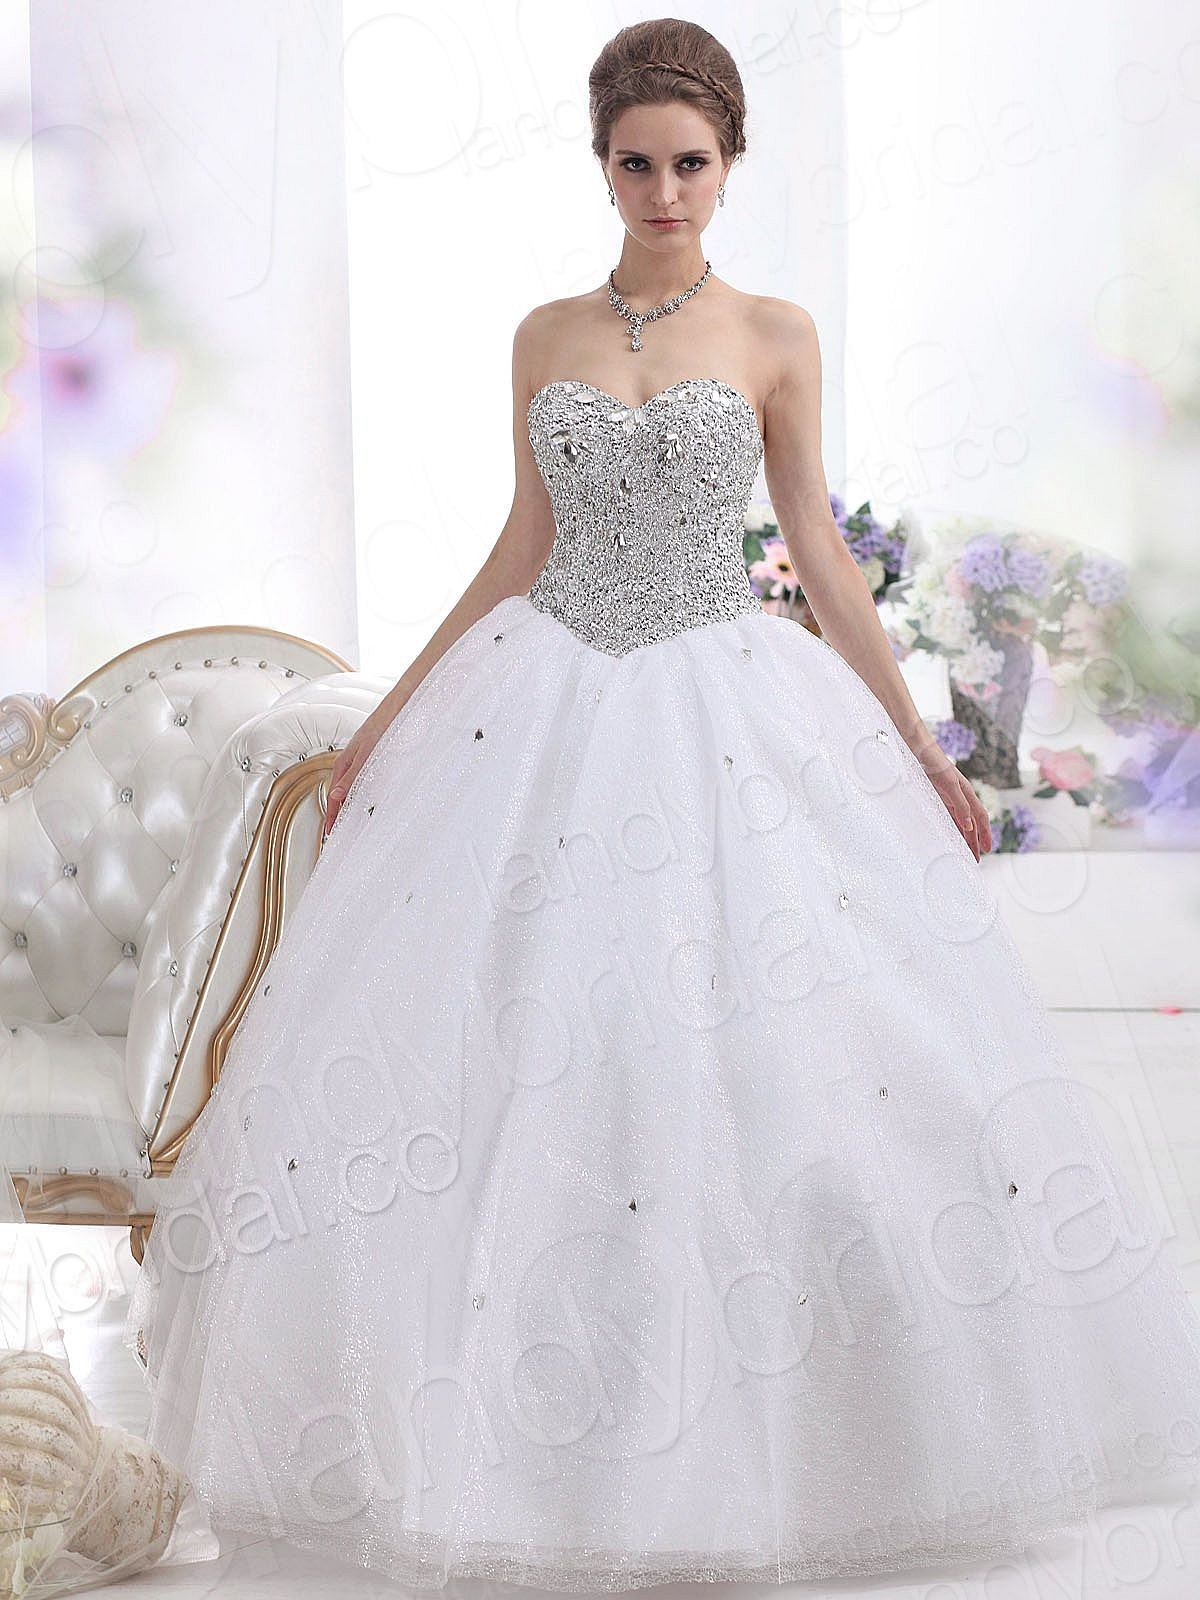 Strapless Ball Gown Wedding Dresses - Stylish and Elegant (5)